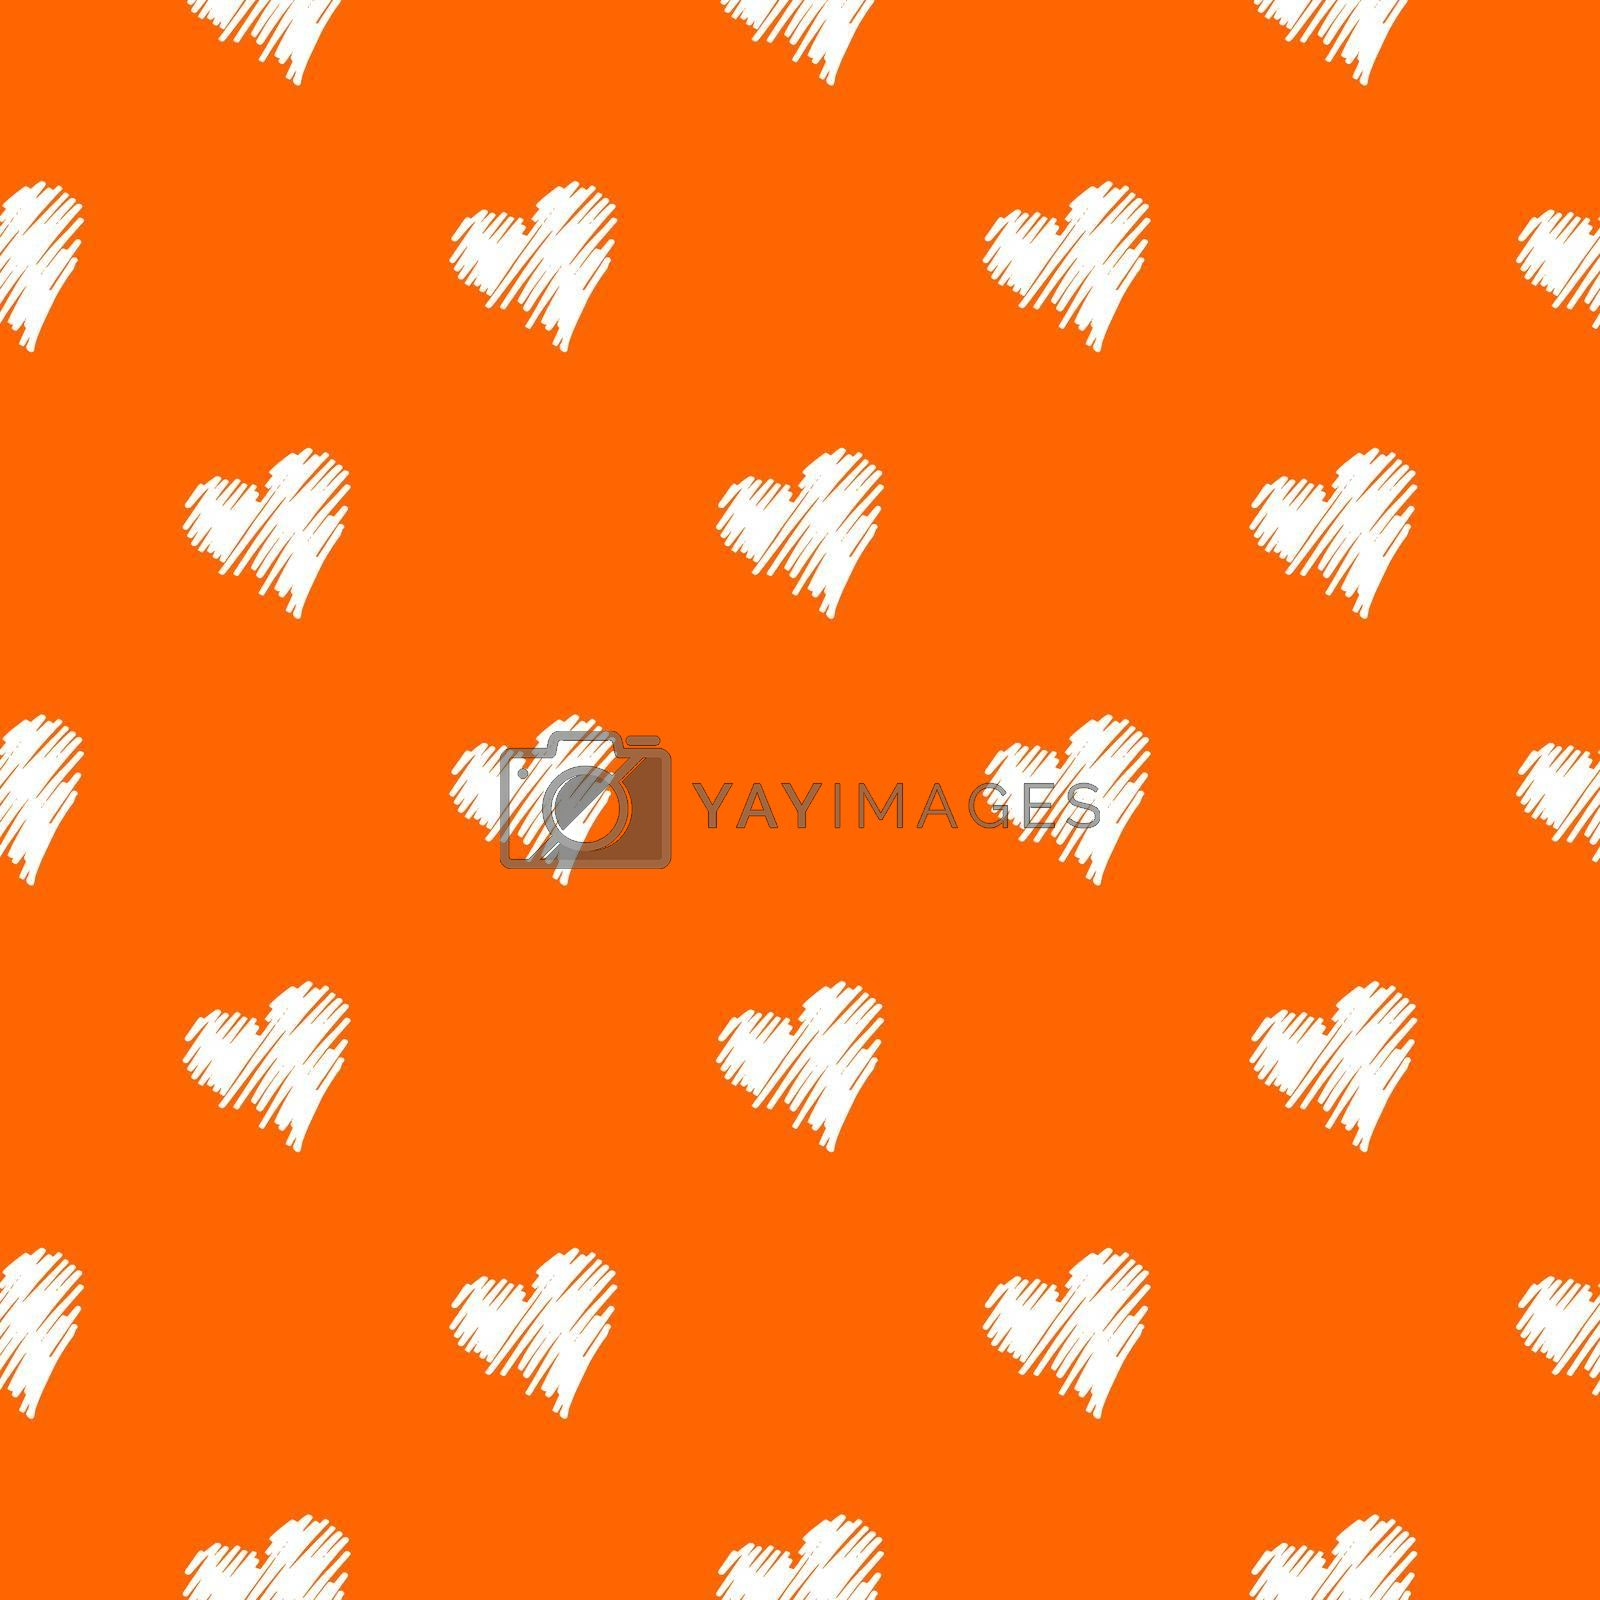 Semless heart shape pattern with colorful background